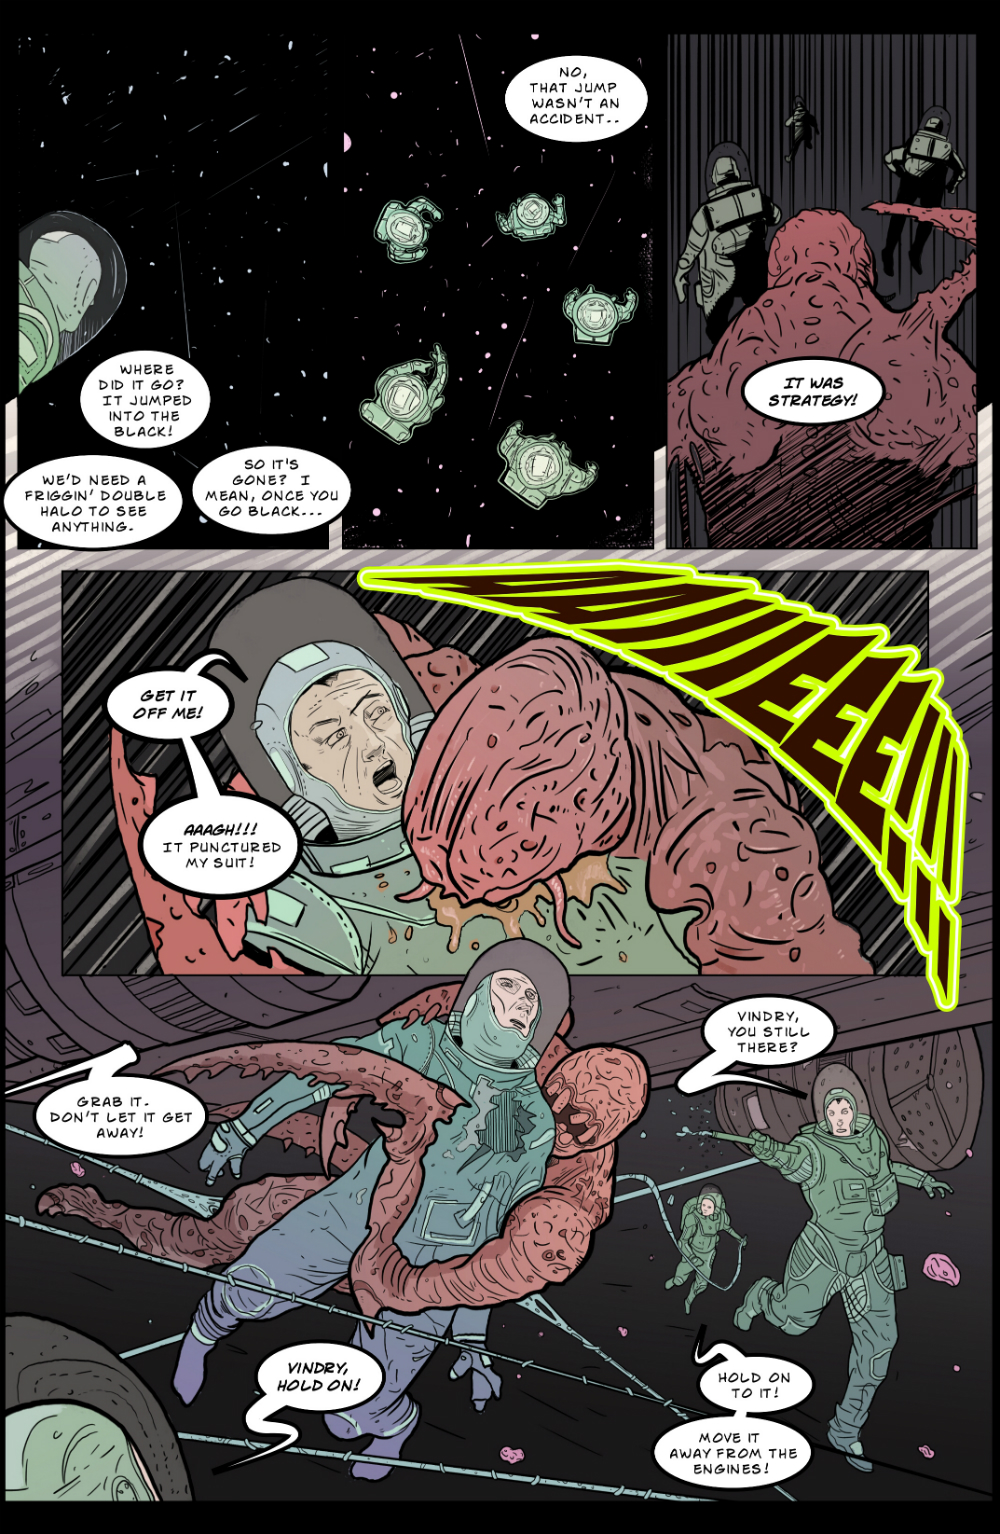 IN SPACE page 6 -- story 24 in THE BOOK OF LIES